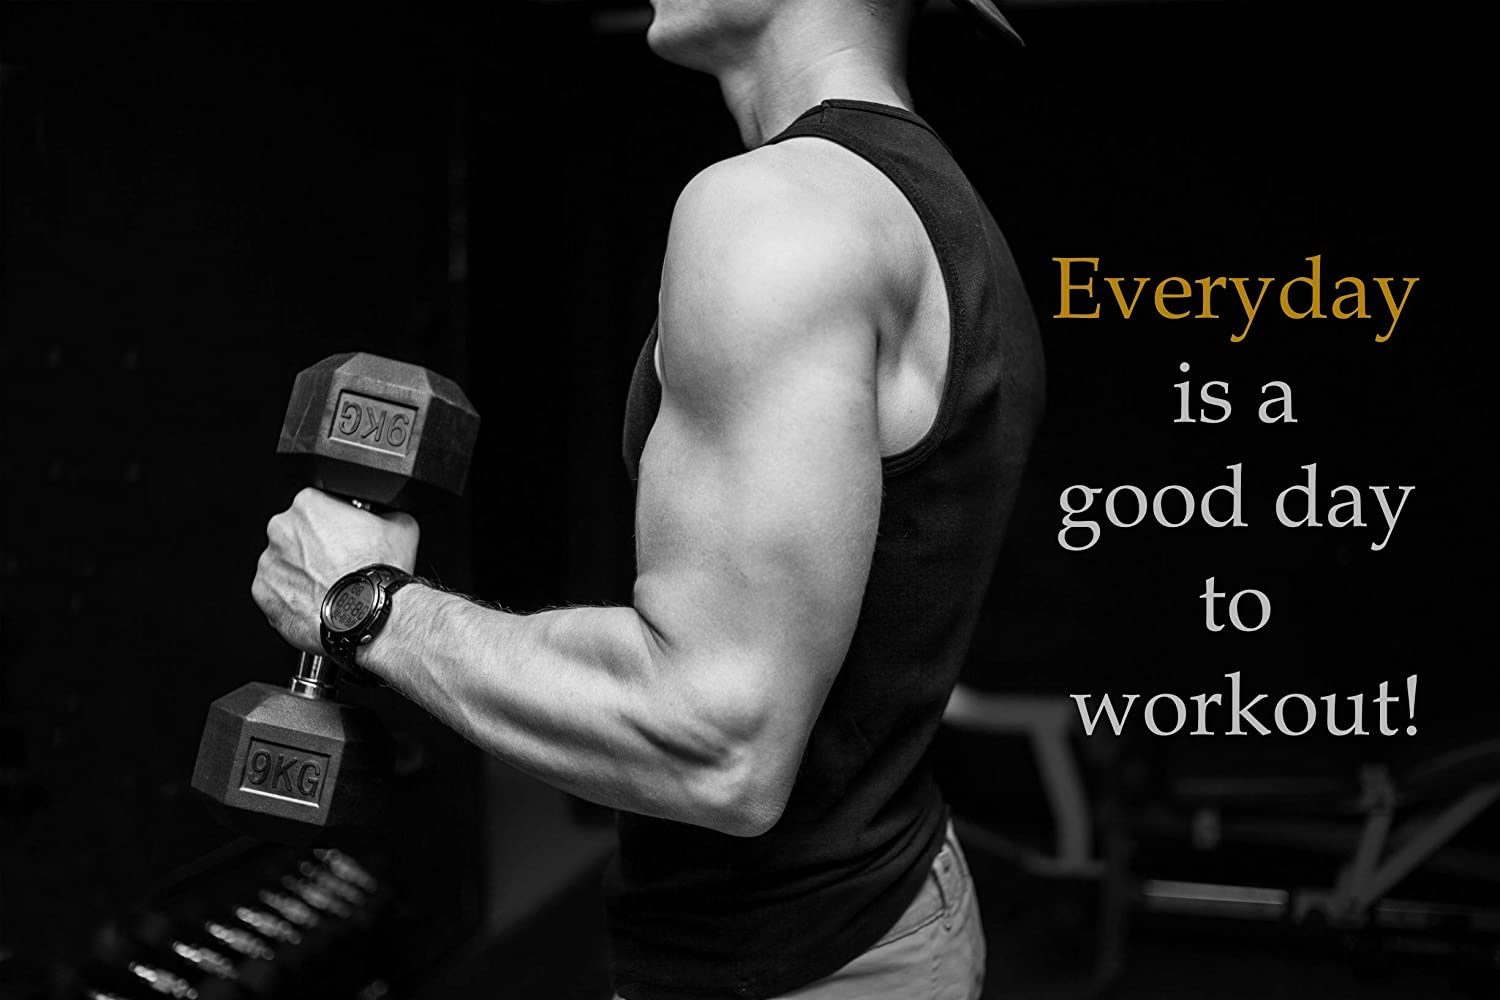 Amazon Com Ezposterprints Bodybuilding Men Girl Fitness Workout Quotes Motivational Inspirational Muscle Gym Posters Wall Art Print For Home Office Gym Motivation Quote 1 36x24 Inches Posters Prints